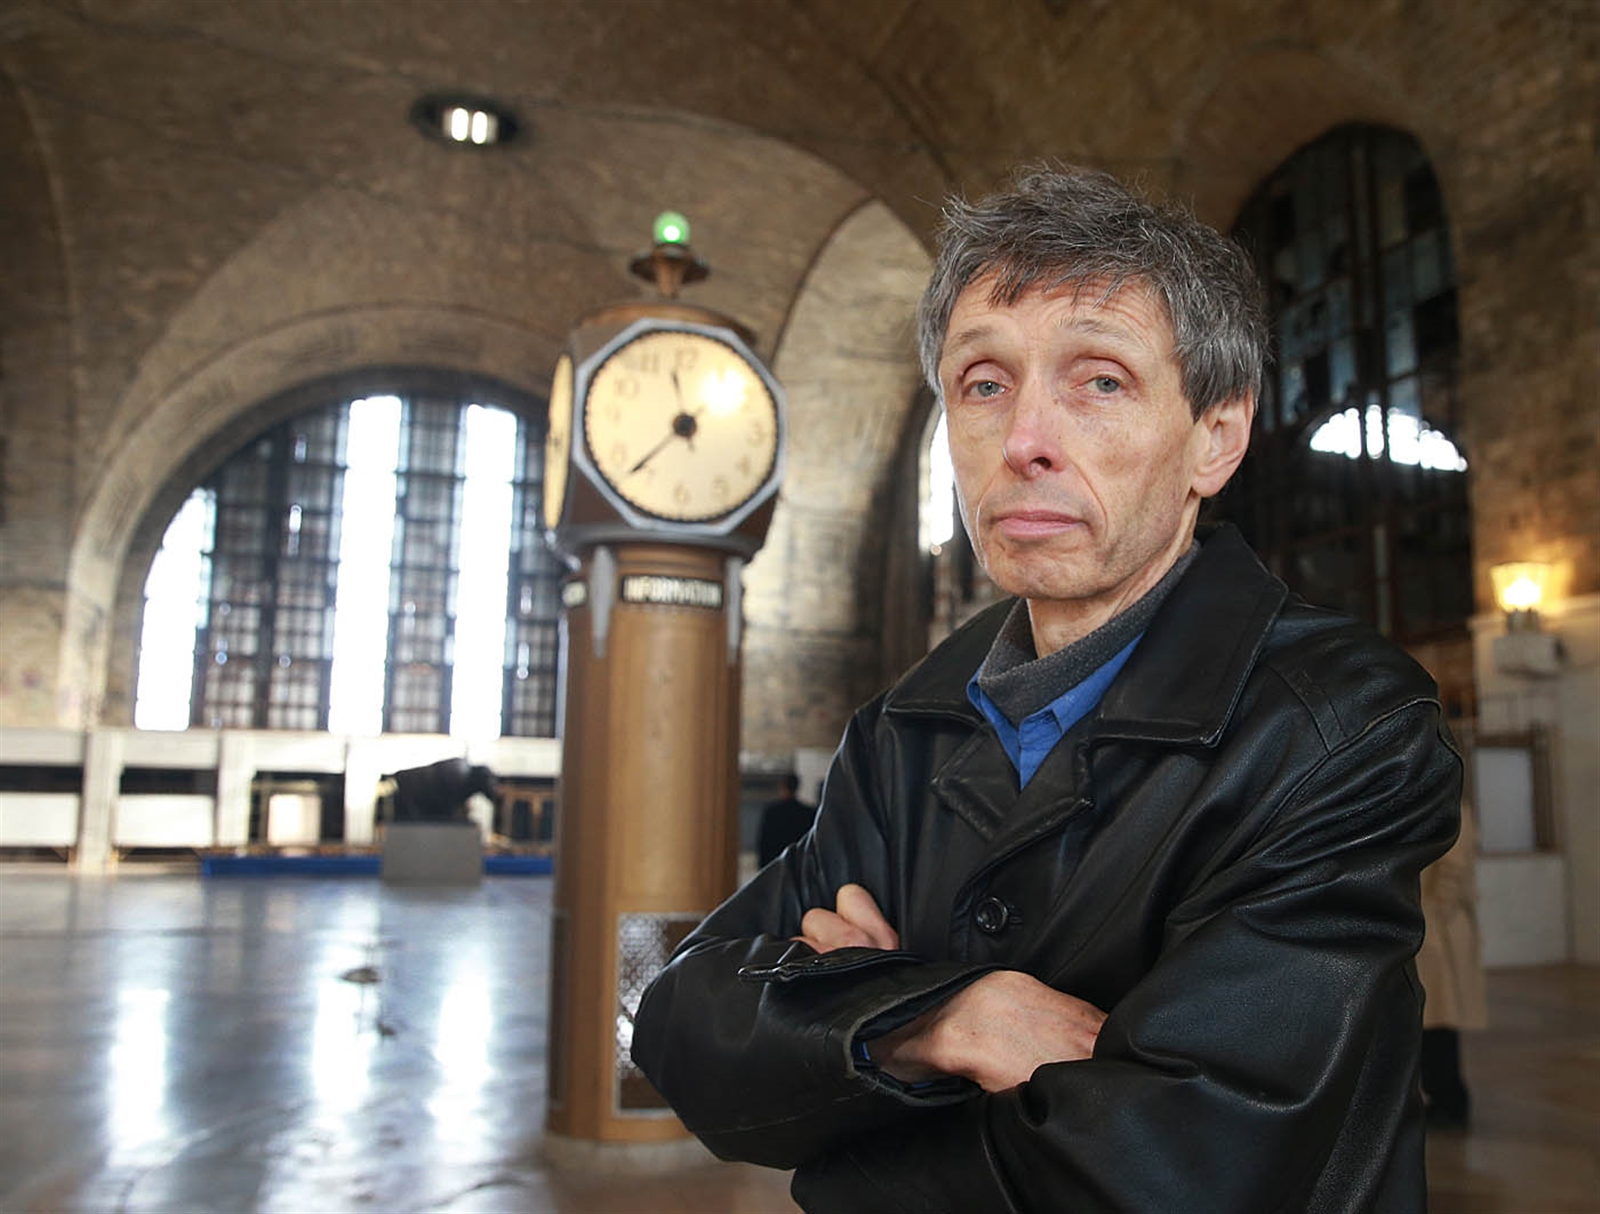 It is the most exciting project I've ever been involved in, and I can't wait to get started,says Harry Stinson, designated developer of the Central Terminal. (John Hickey/Buffalo News)